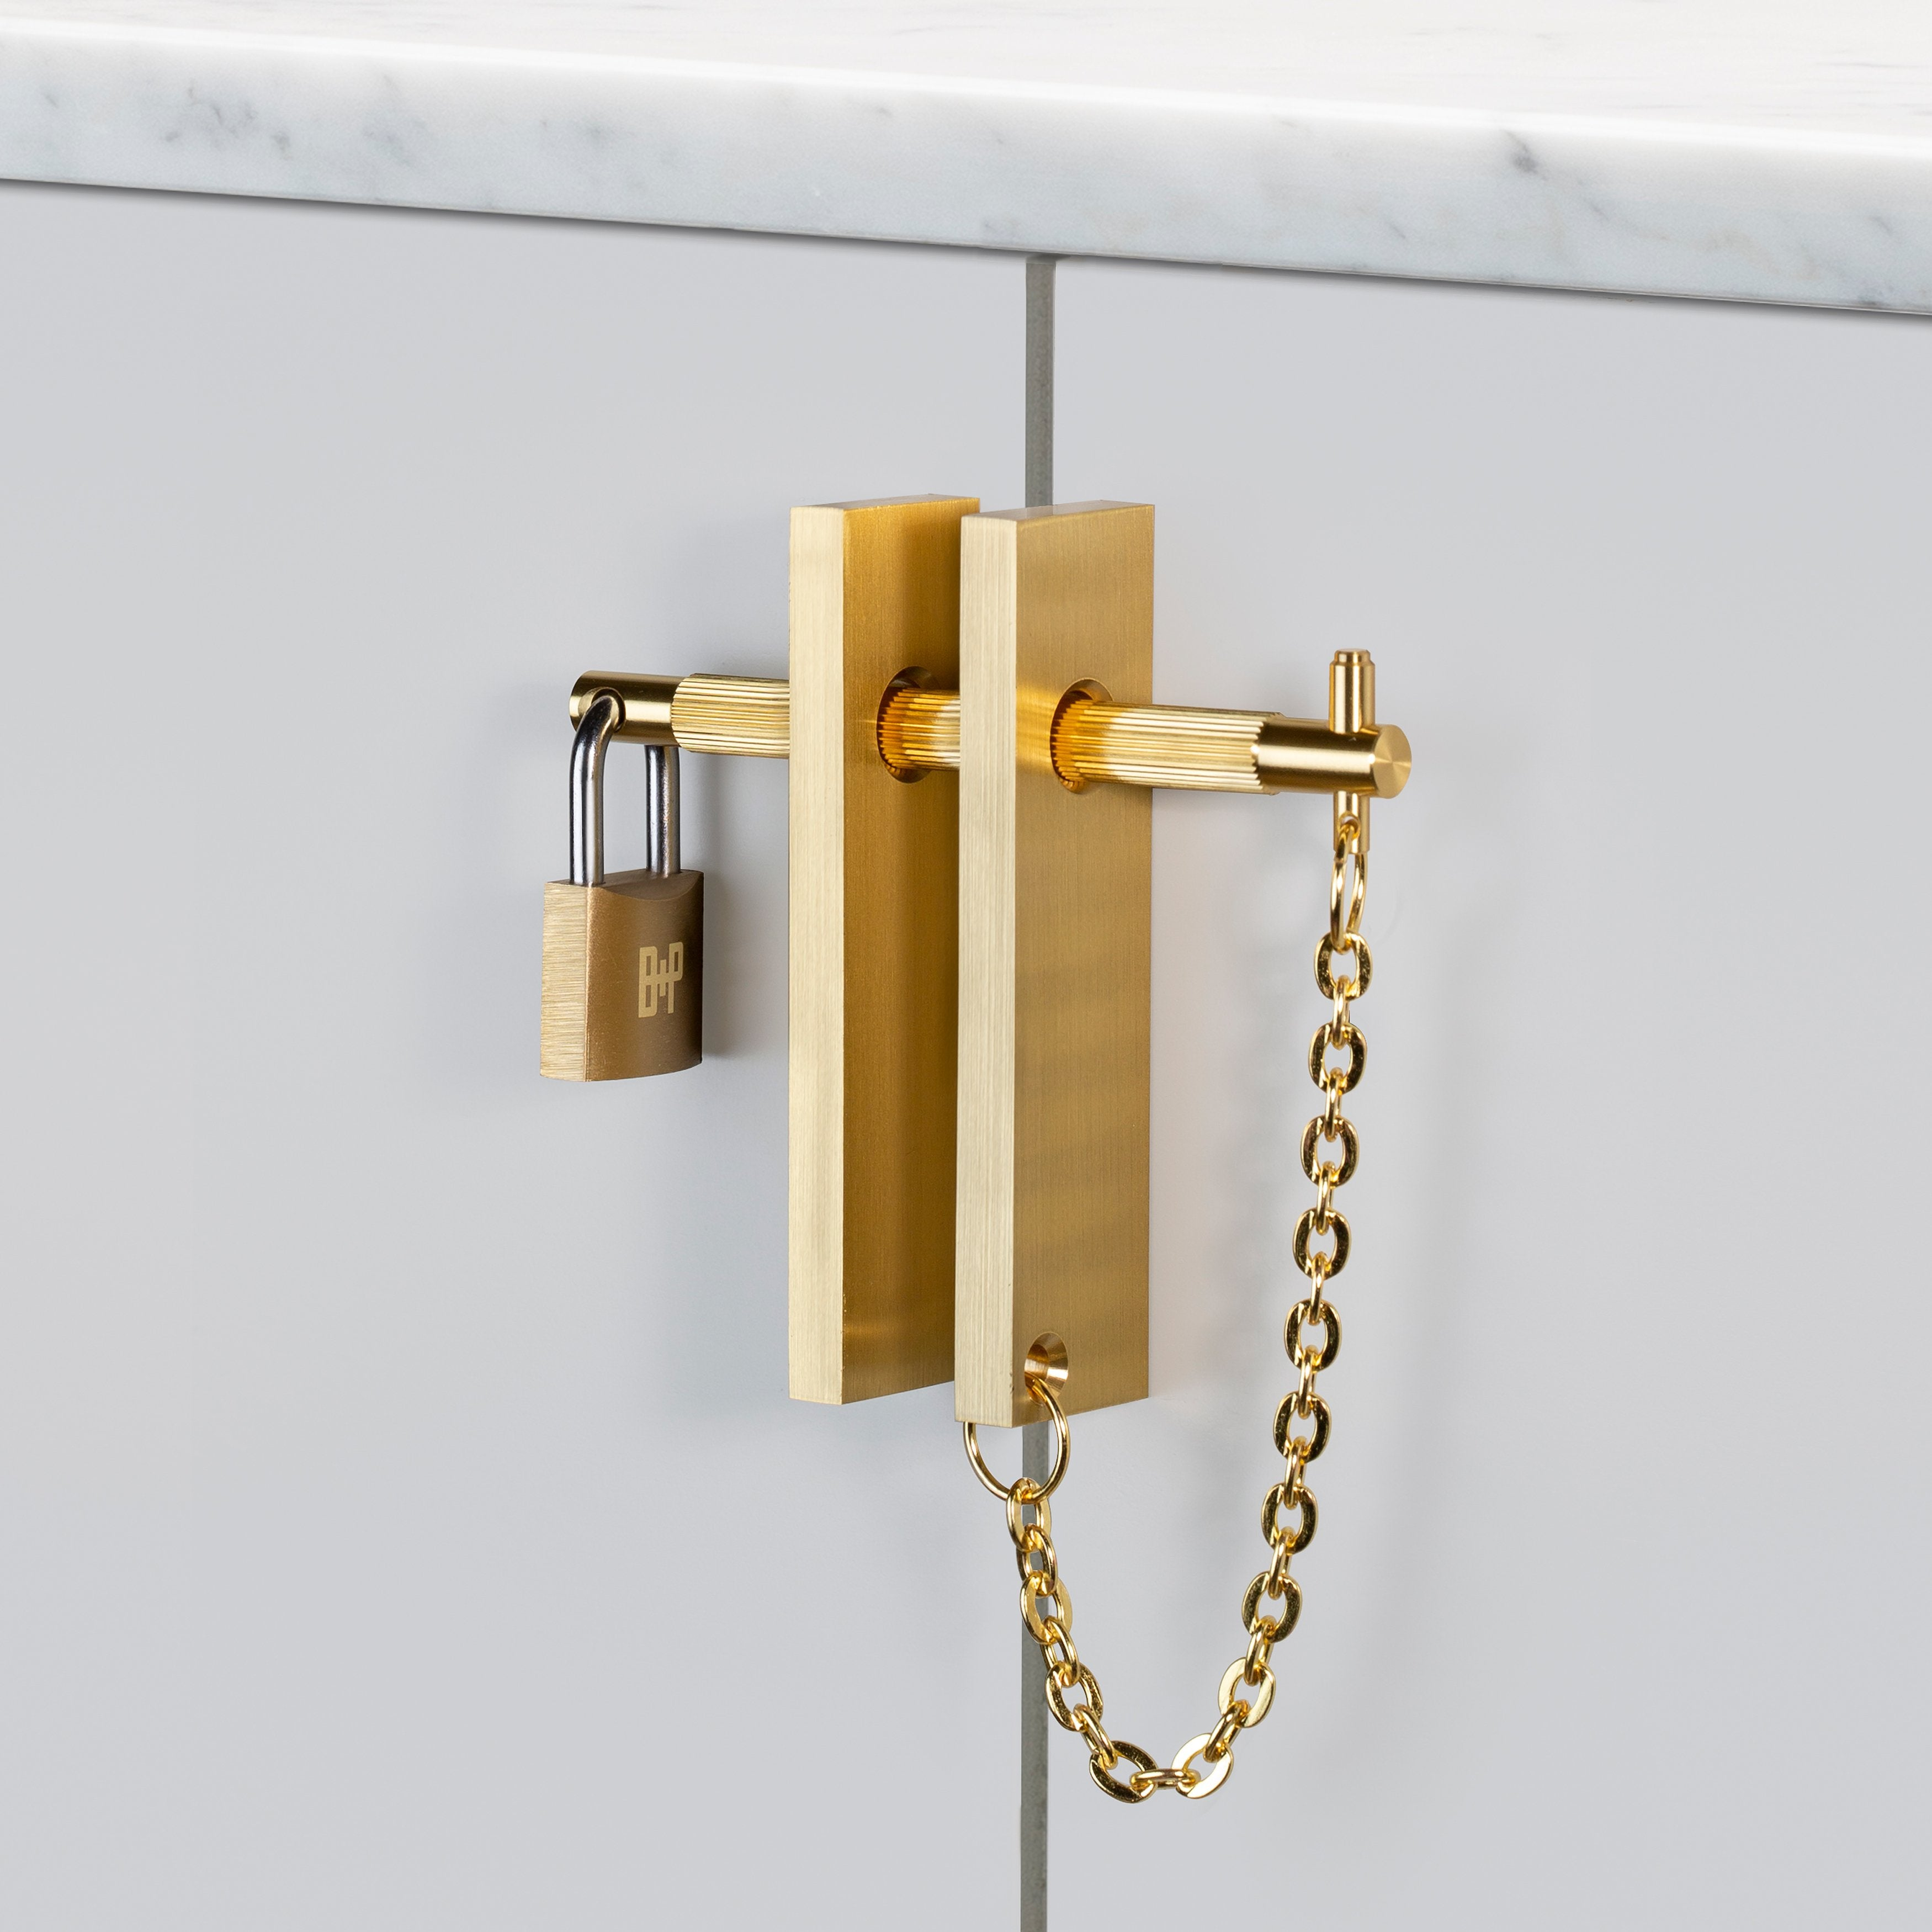 Buster and Punch PRECIOUS BAR / BRASS - No.42 Interiors